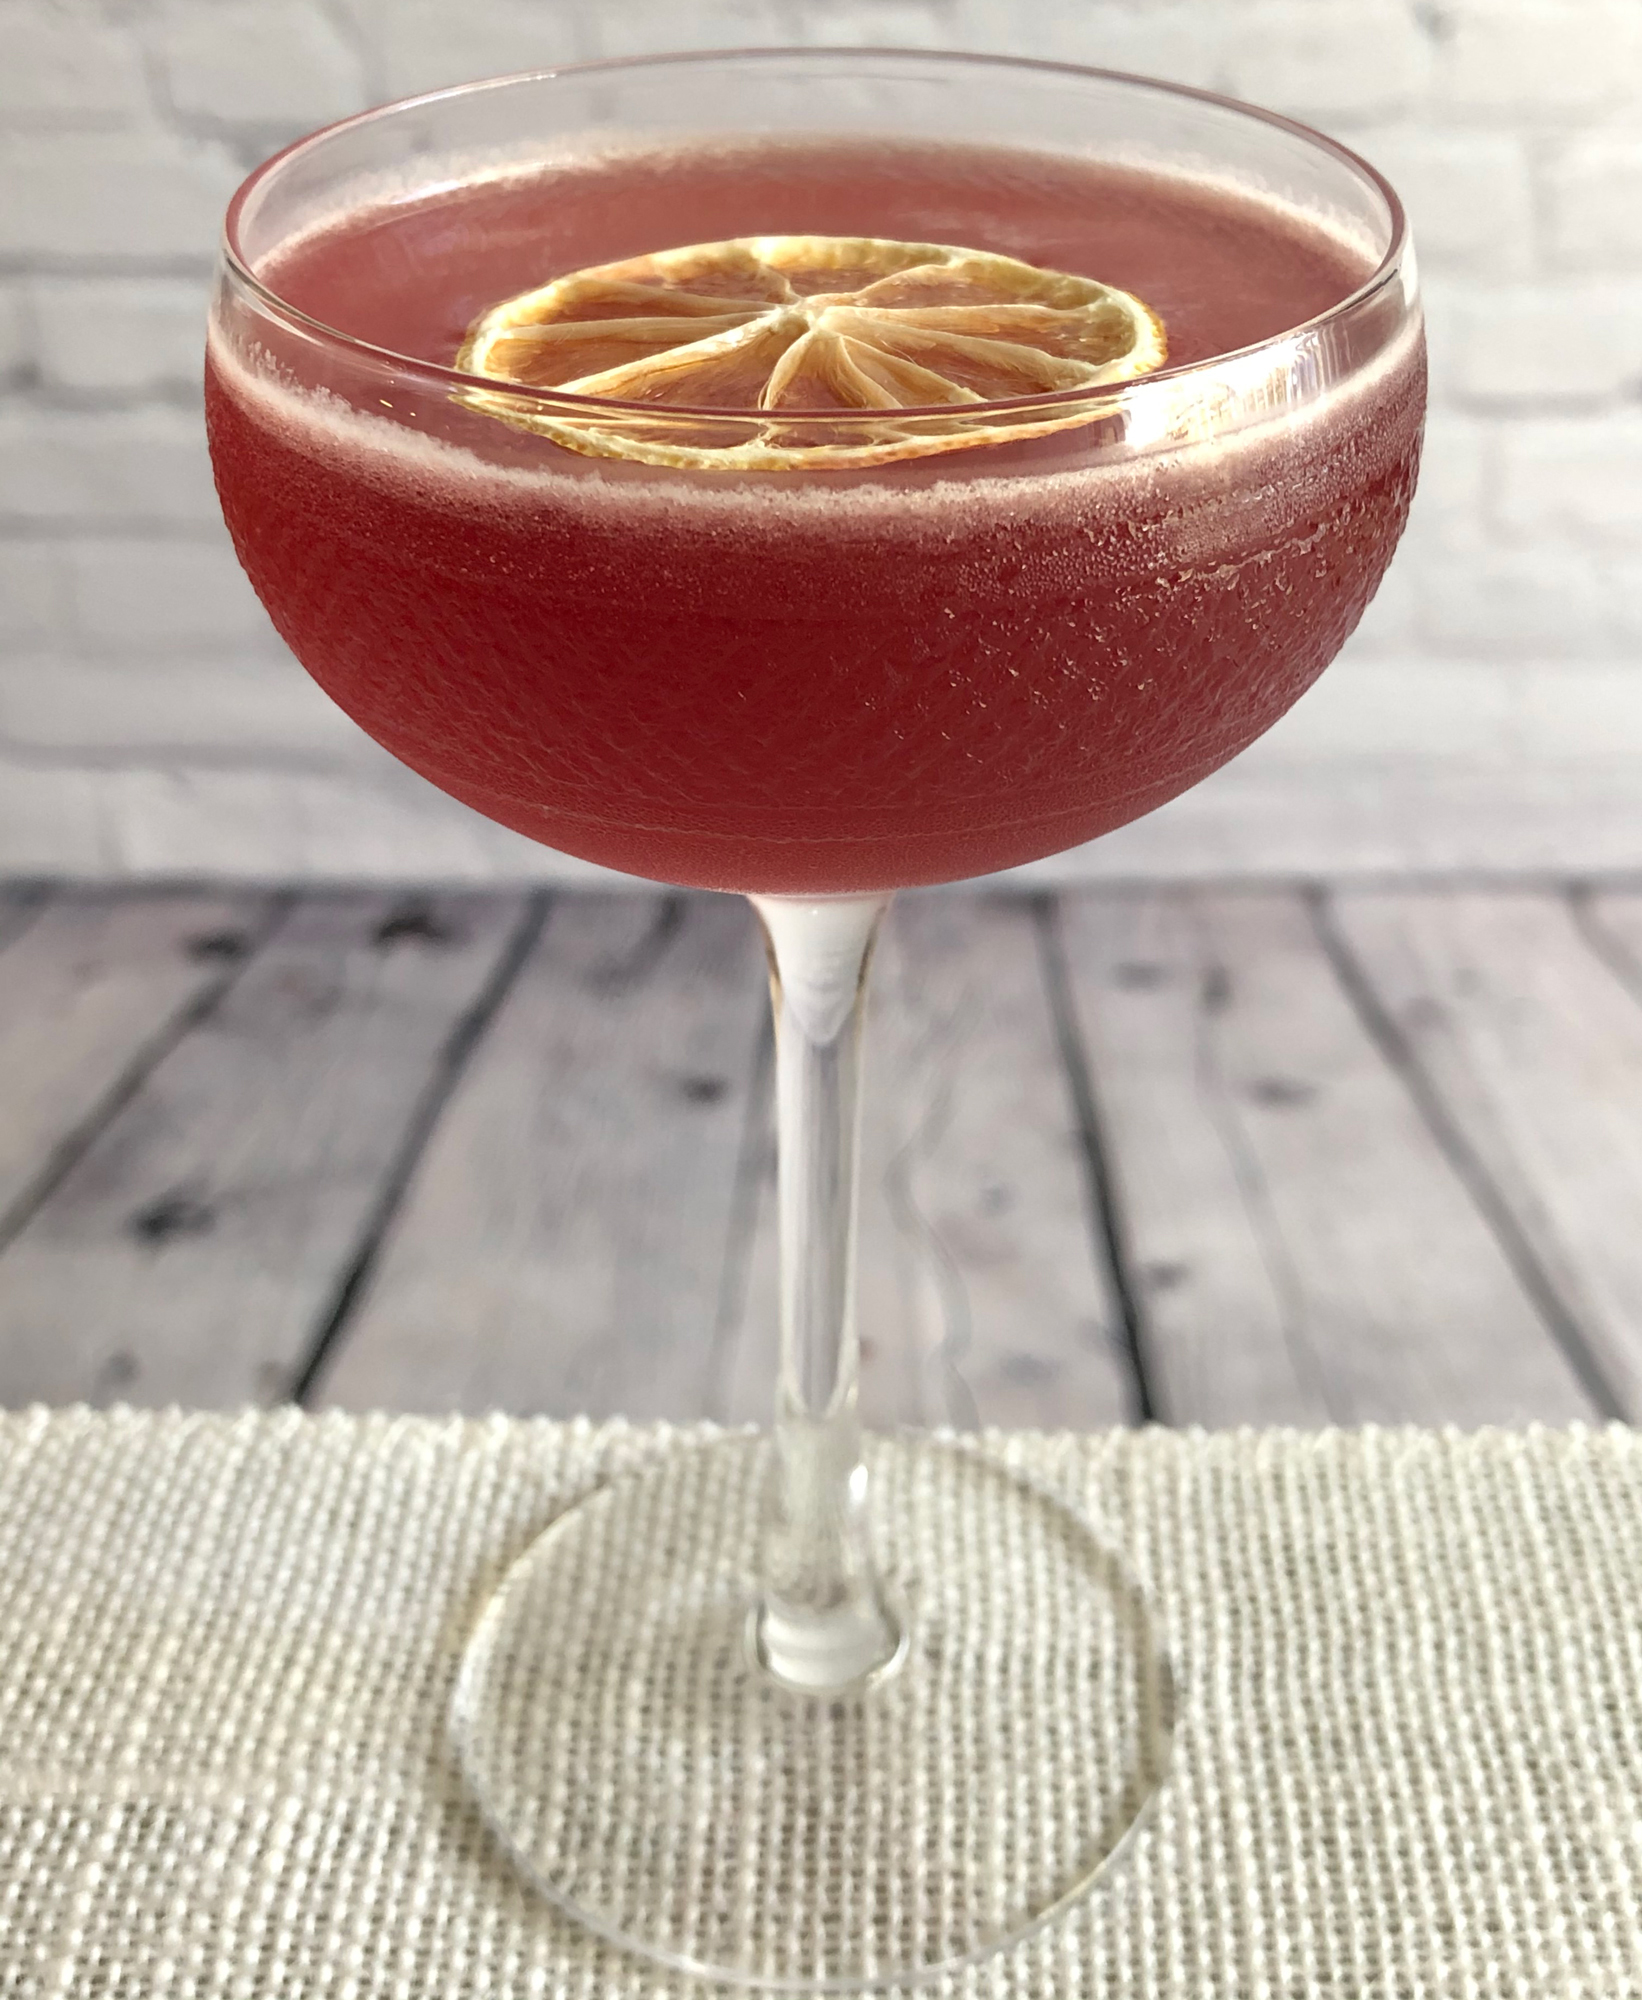 An example of the Scofflaw, the mixed drink (cocktail) featuring rye whiskey, Dolin Dry Vermouth de Chambéry, lemon juice, and grenadine; photo by Lee Edwards